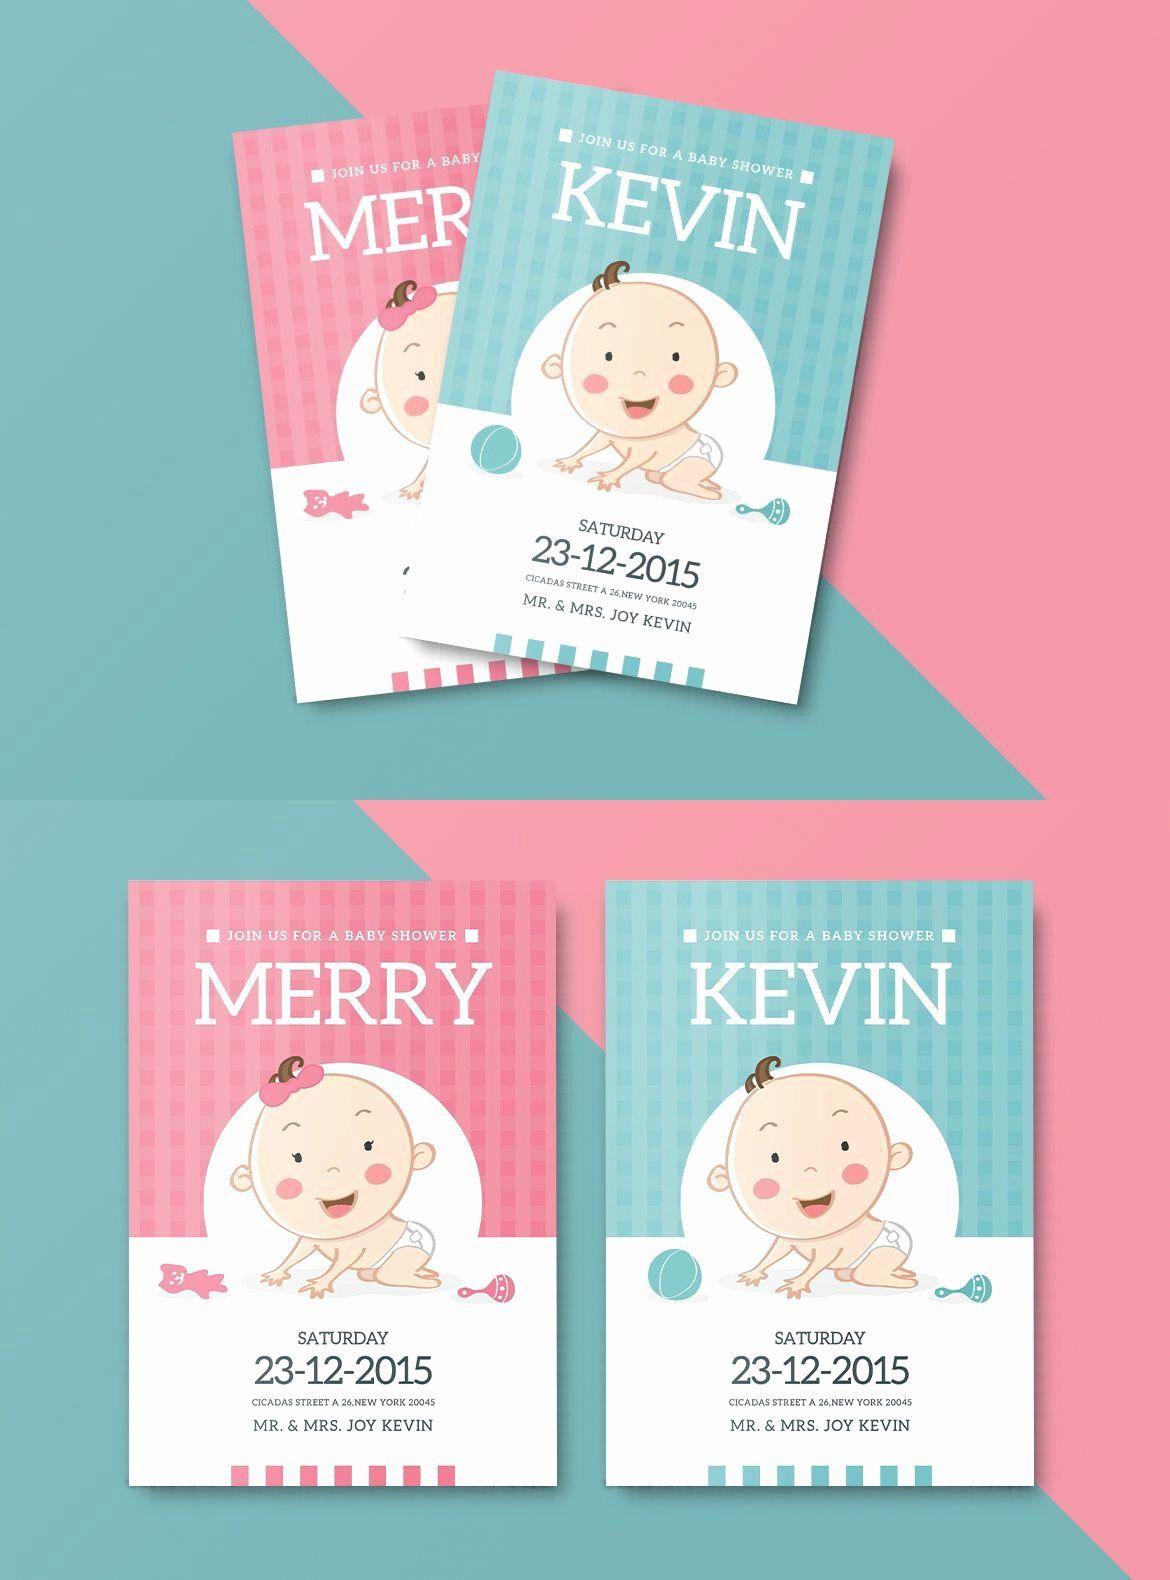 Baby Shower Invitation Psd Awesome Baby Shower Invitation Card Template Ai Psd In 2020 Owl Baby Shower Invitations Baby Shower Invitation Cards Baby Shower Invitations